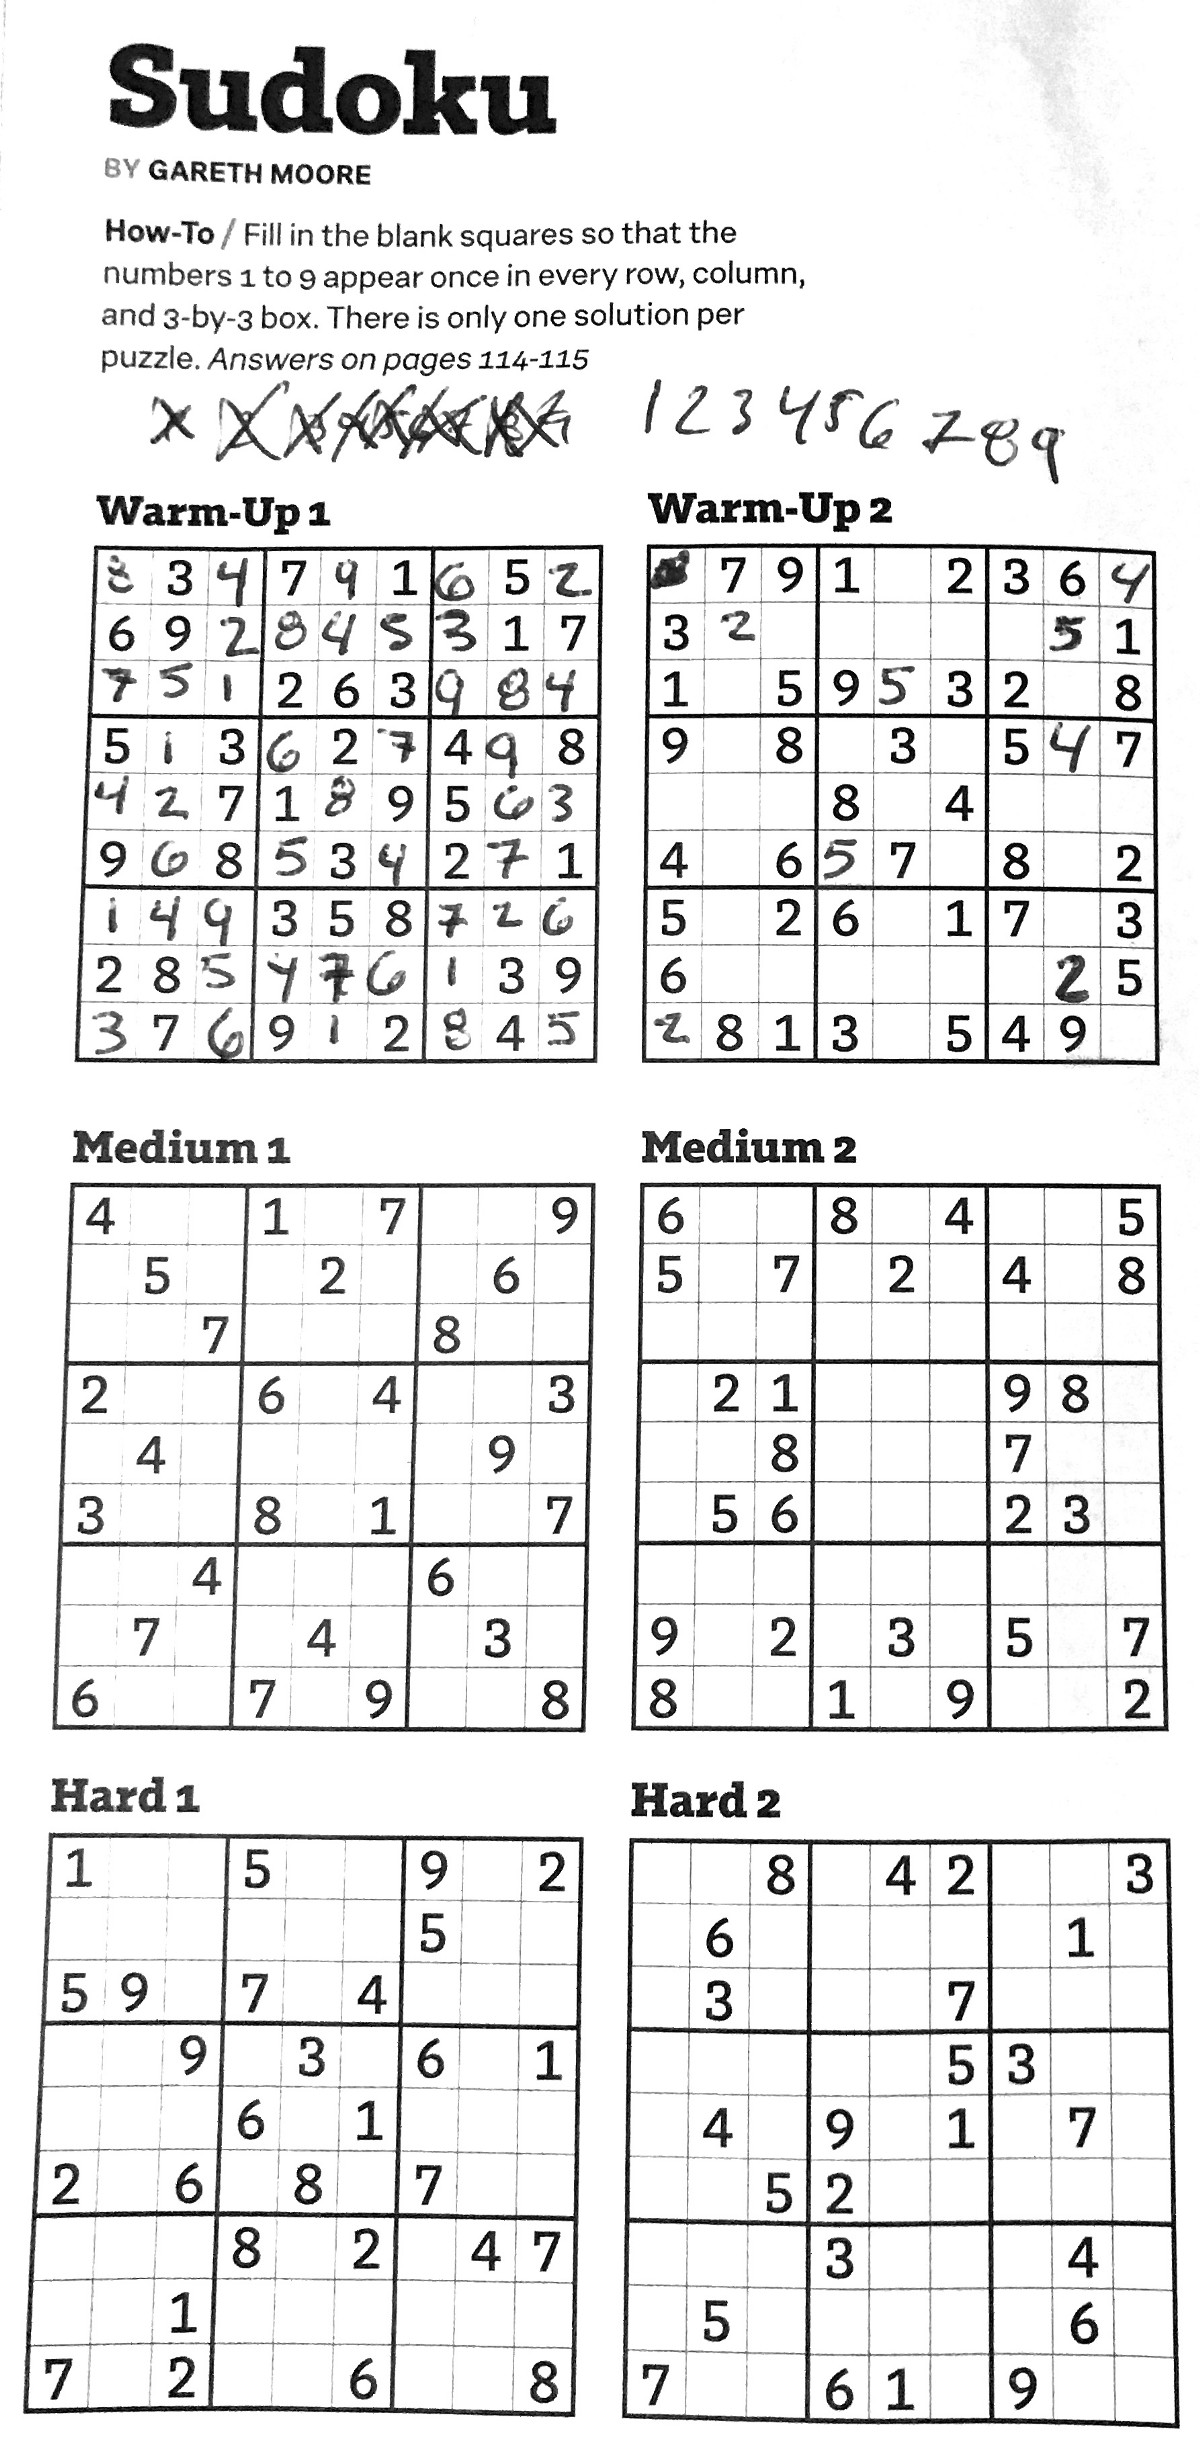 using integer linear programming to solve sudoku puzzles